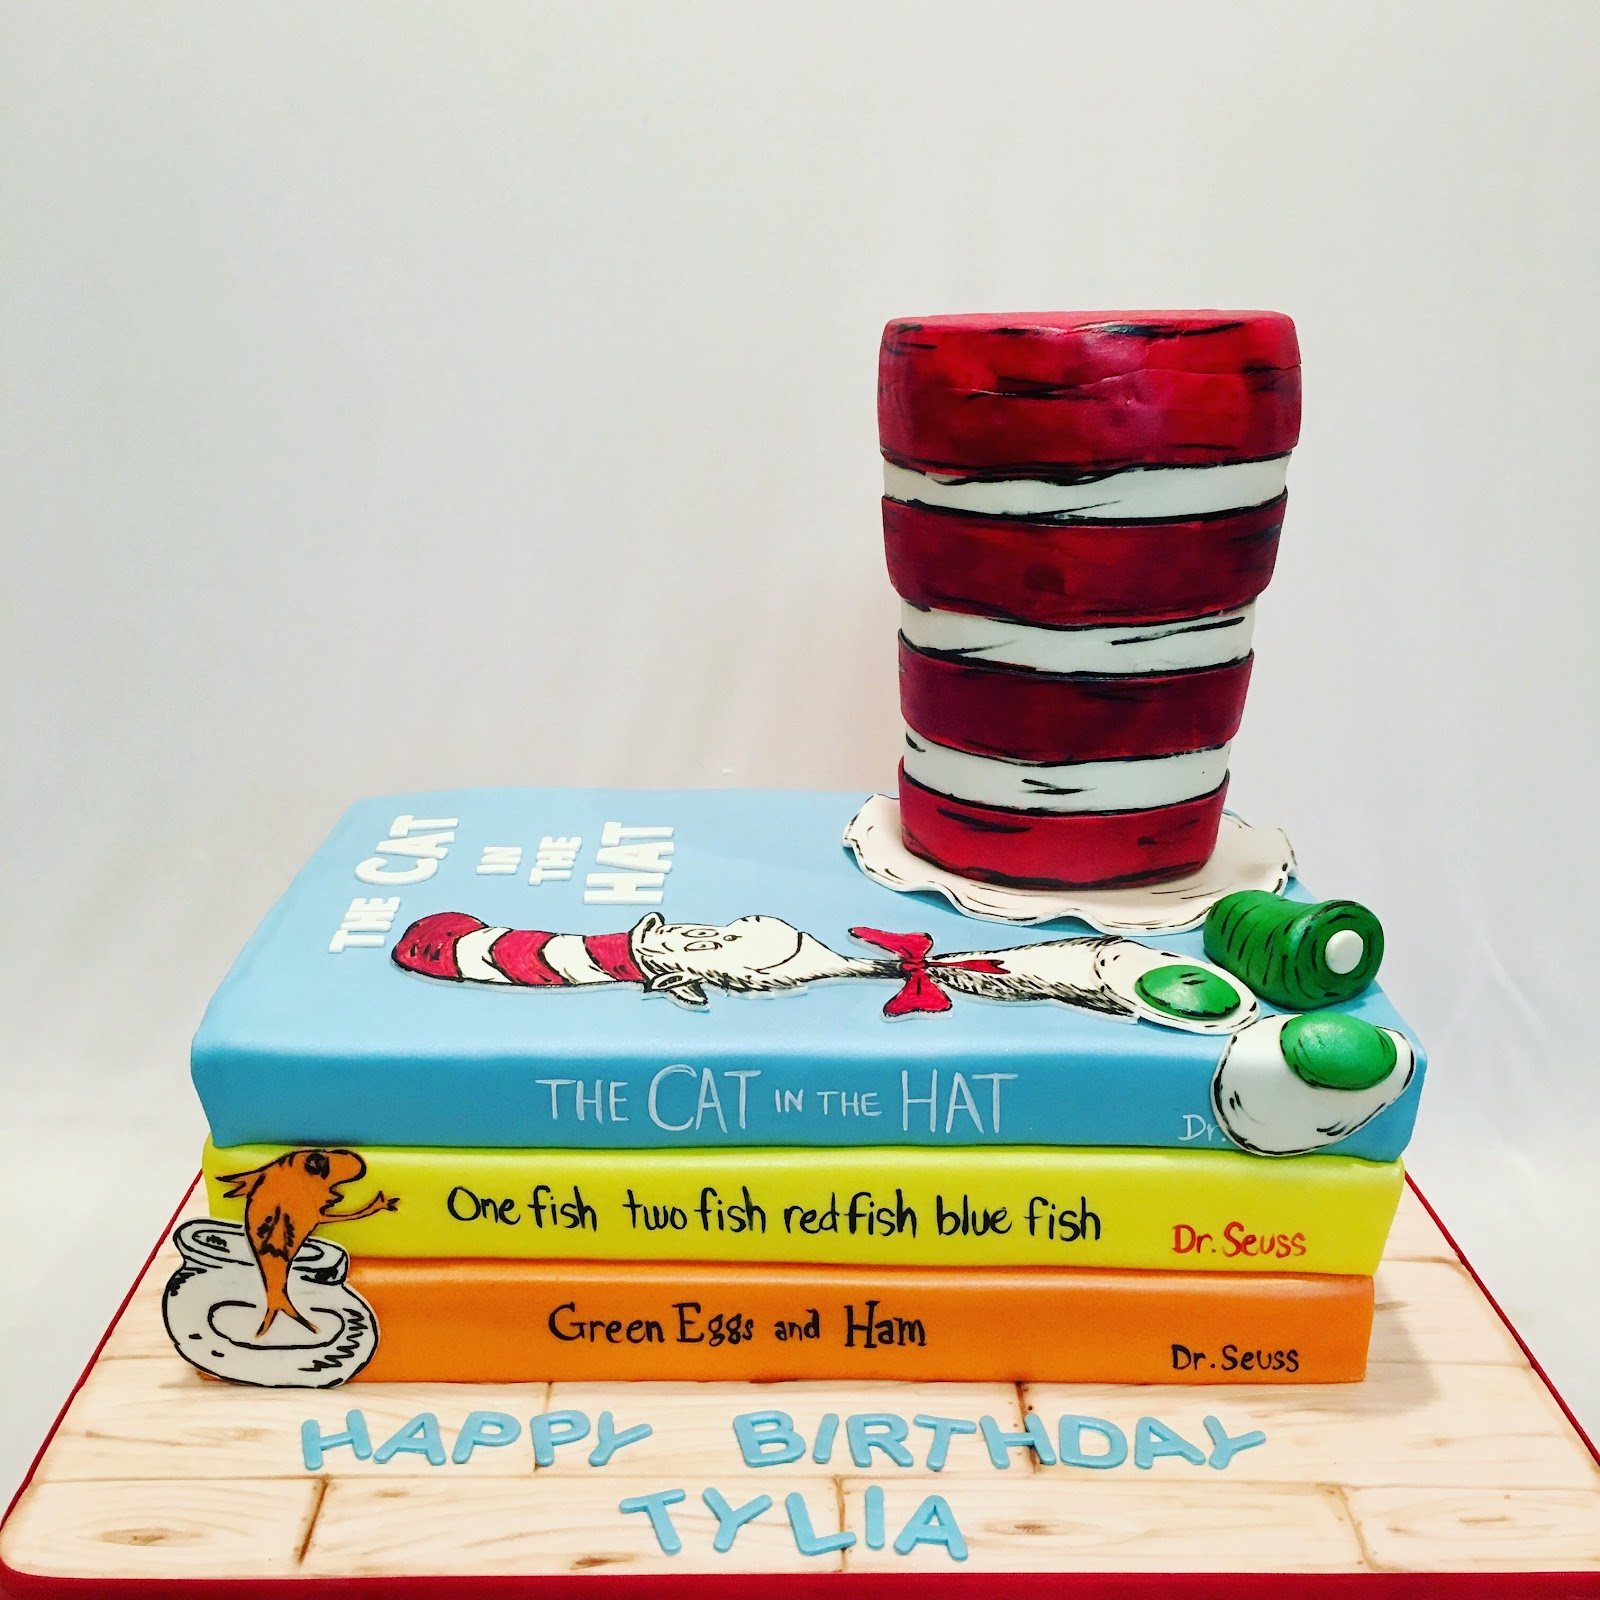 dr seuss books pdf the cat in the hat